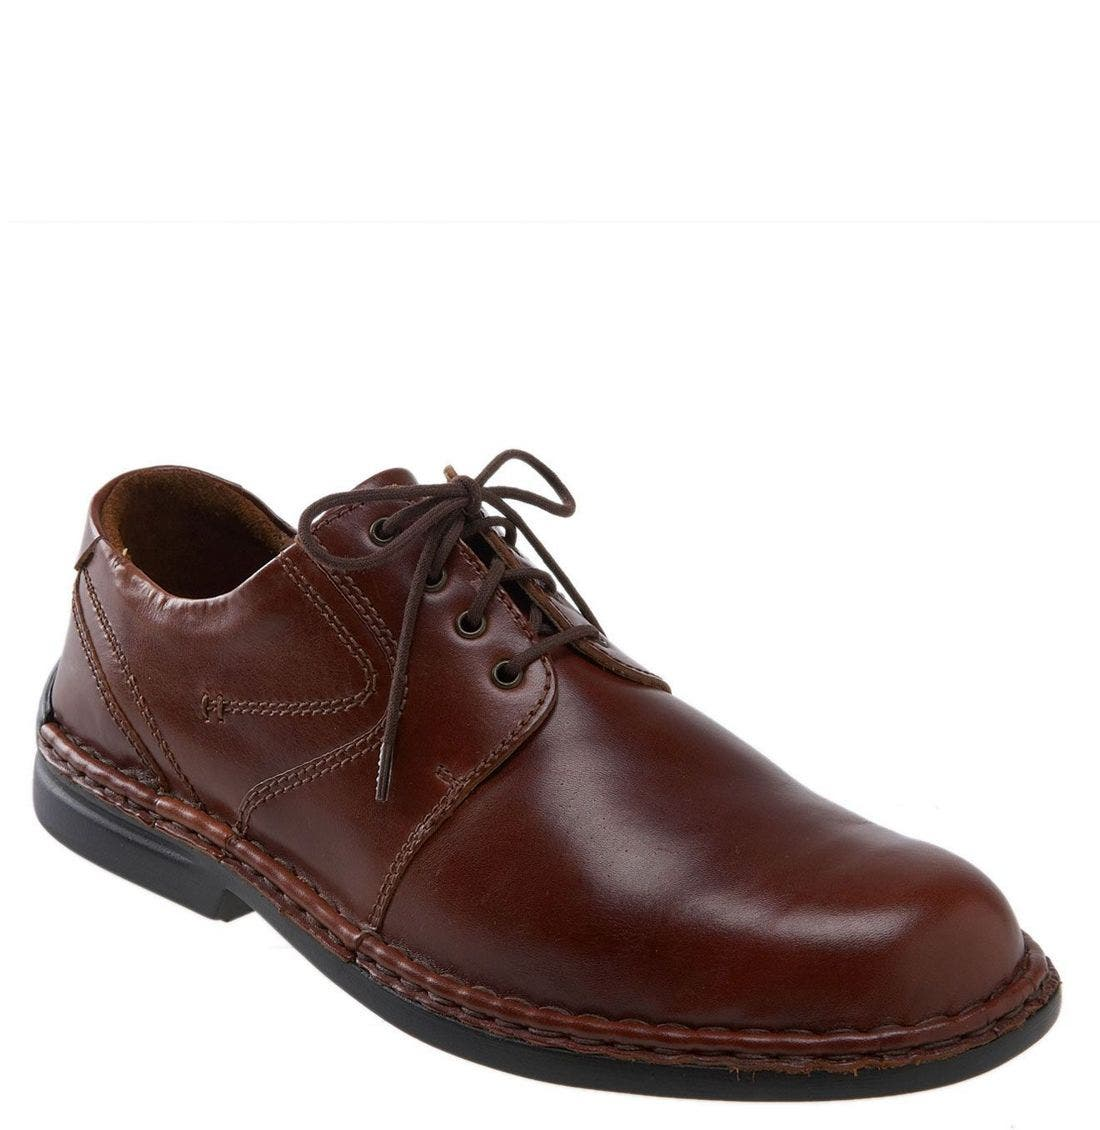 JOSEF SEIBEL 'Walt' Casual Oxford, Main, color, ROMA BRANDY